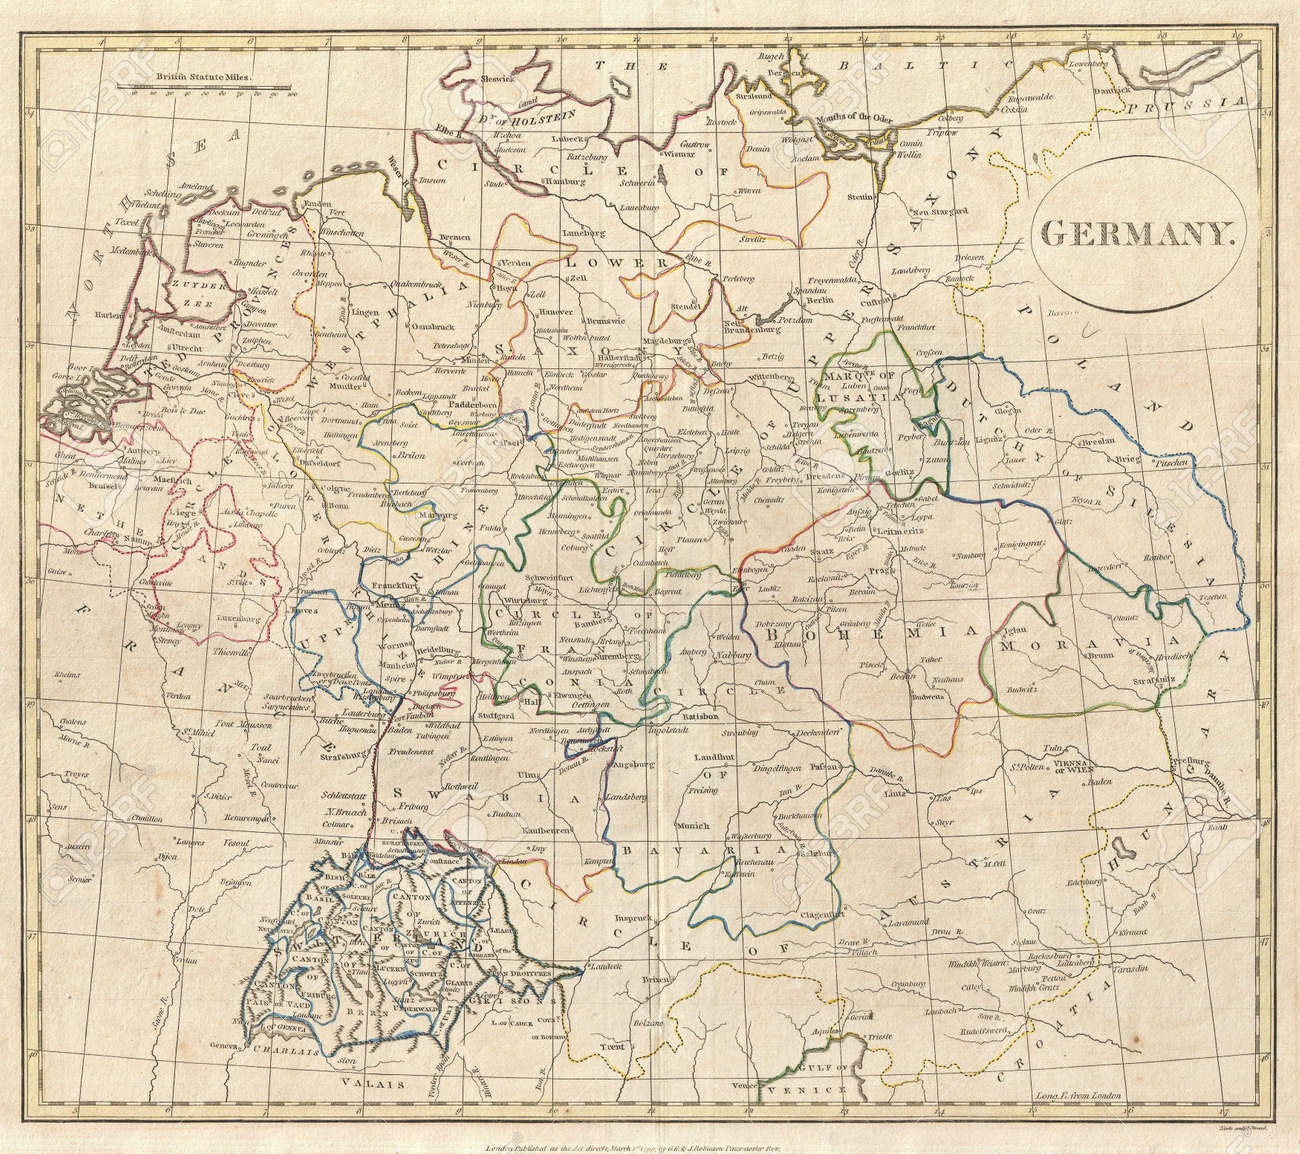 Map Of Germany Jpg.Germany Old Map